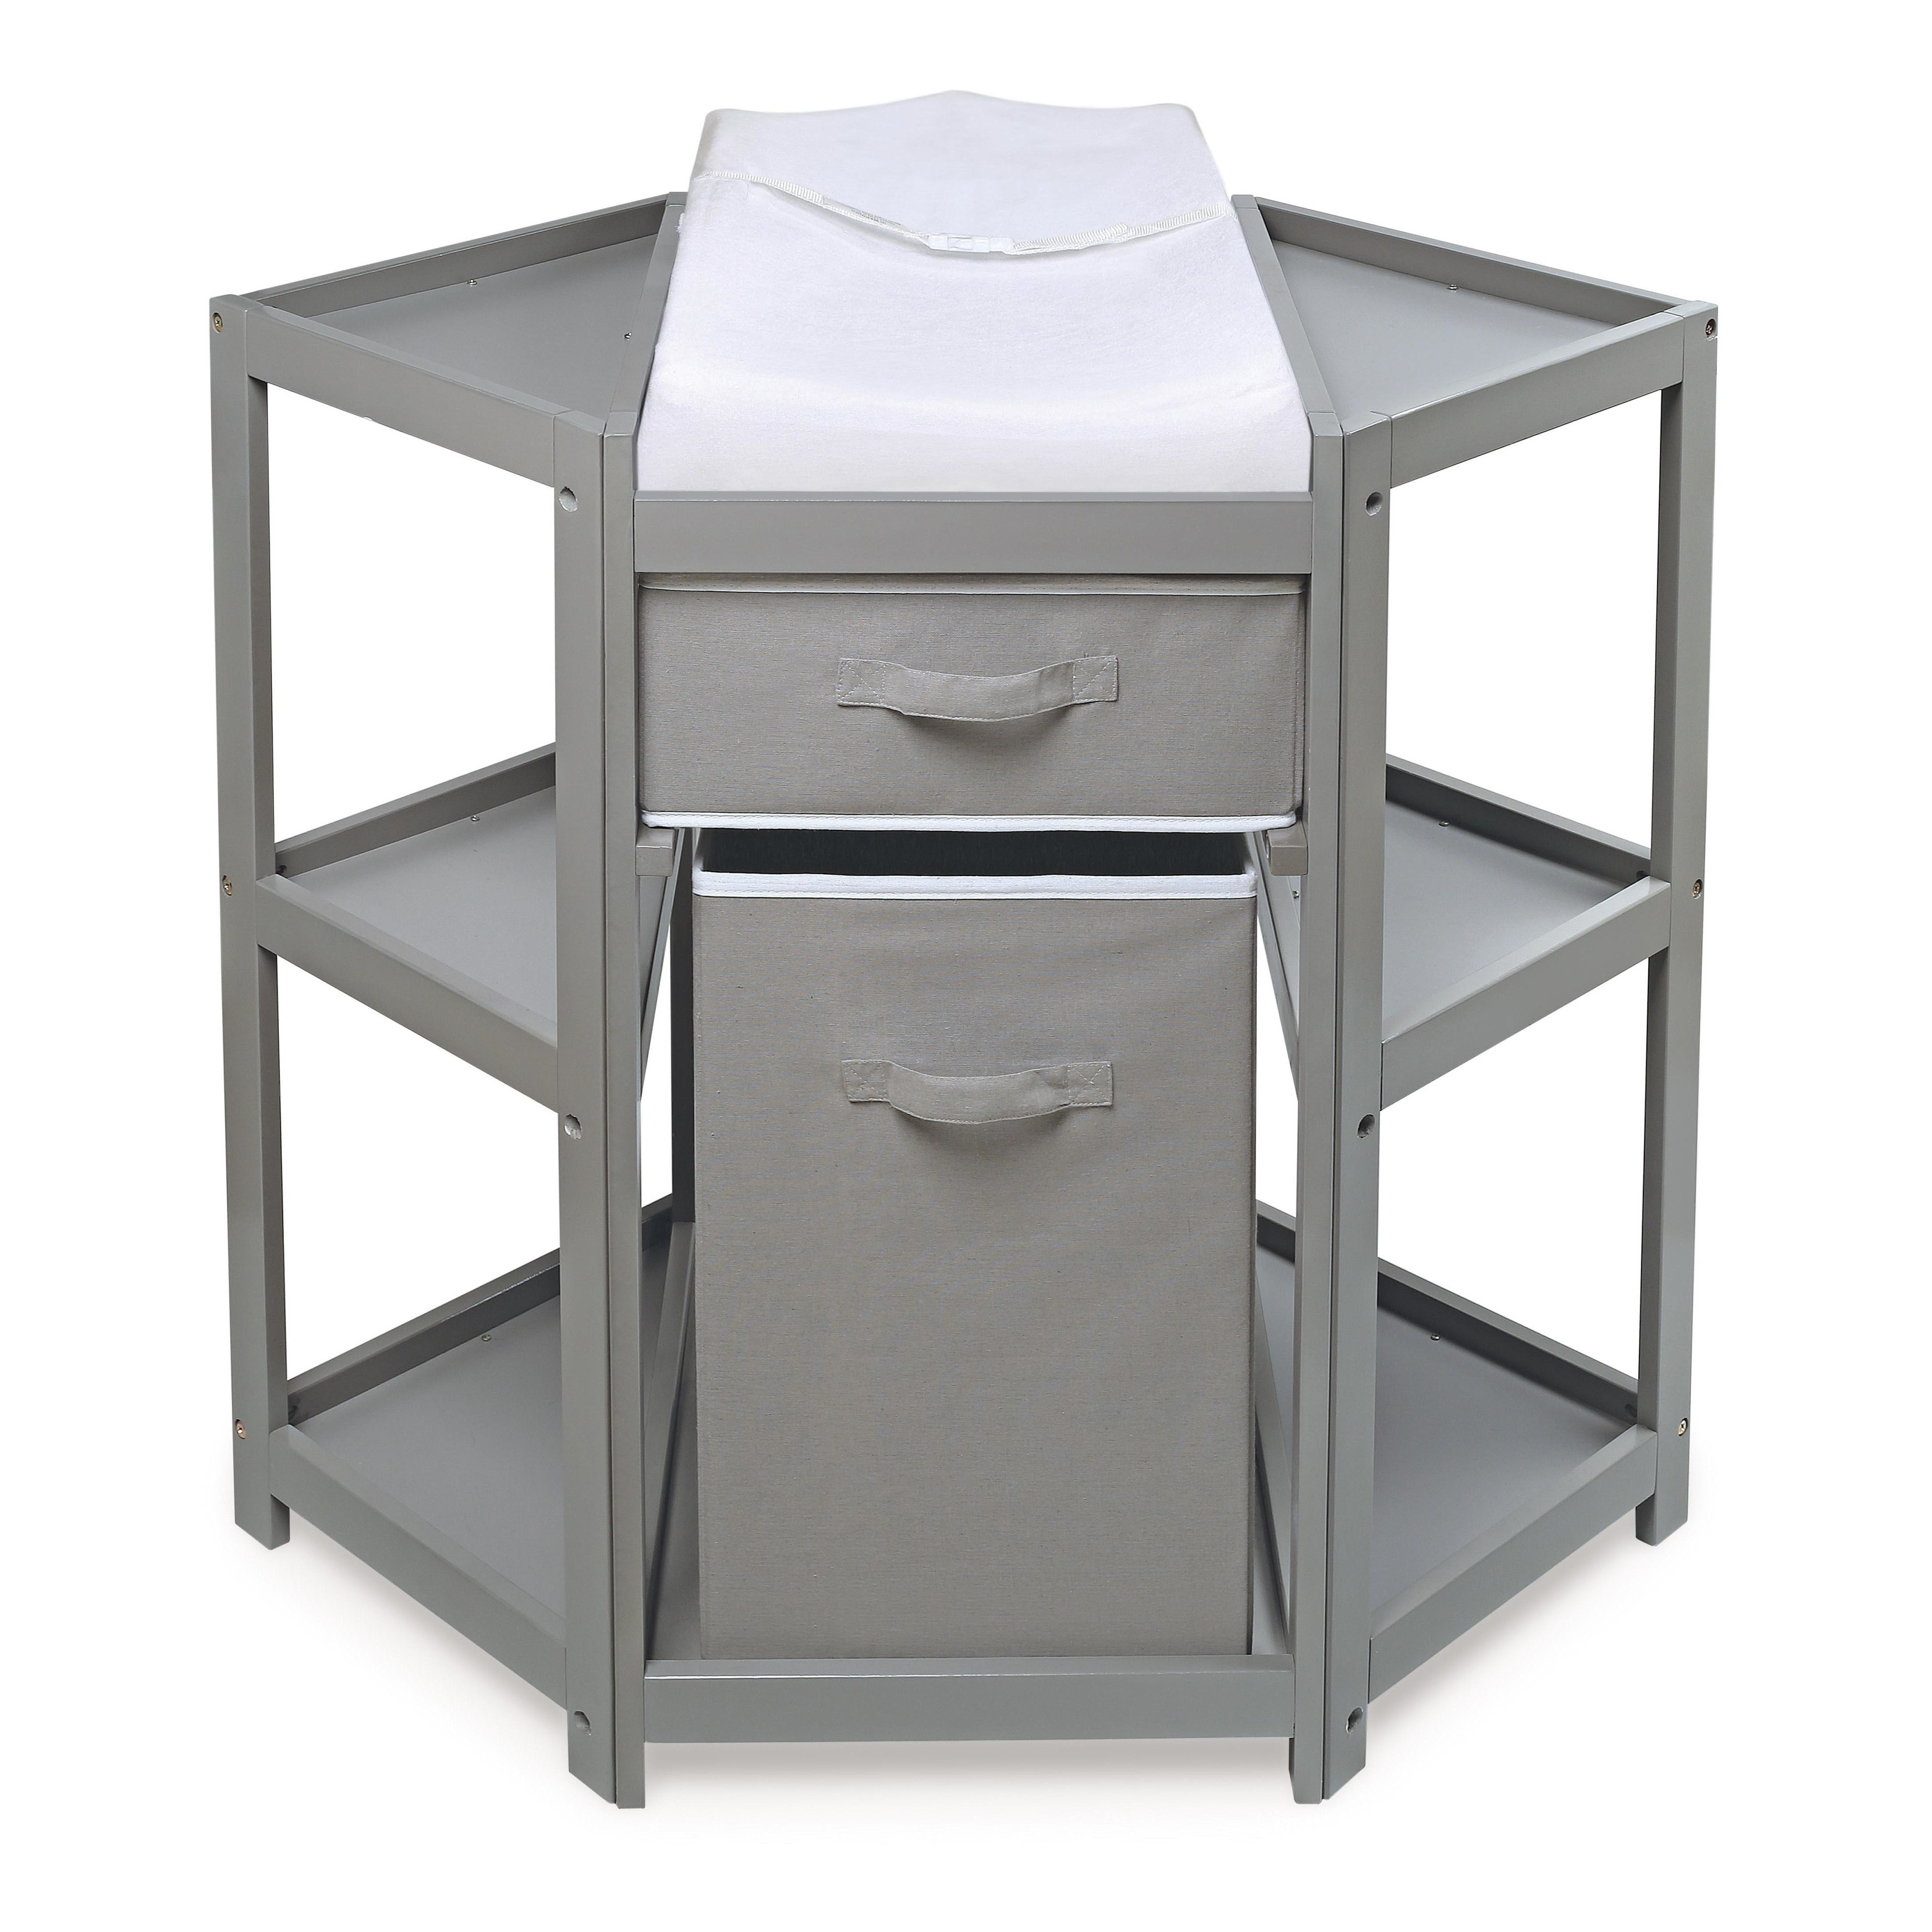 Superieur Shop Diaper Corner Baby Changing Table   Free Shipping Today    Overstock.com   9627159